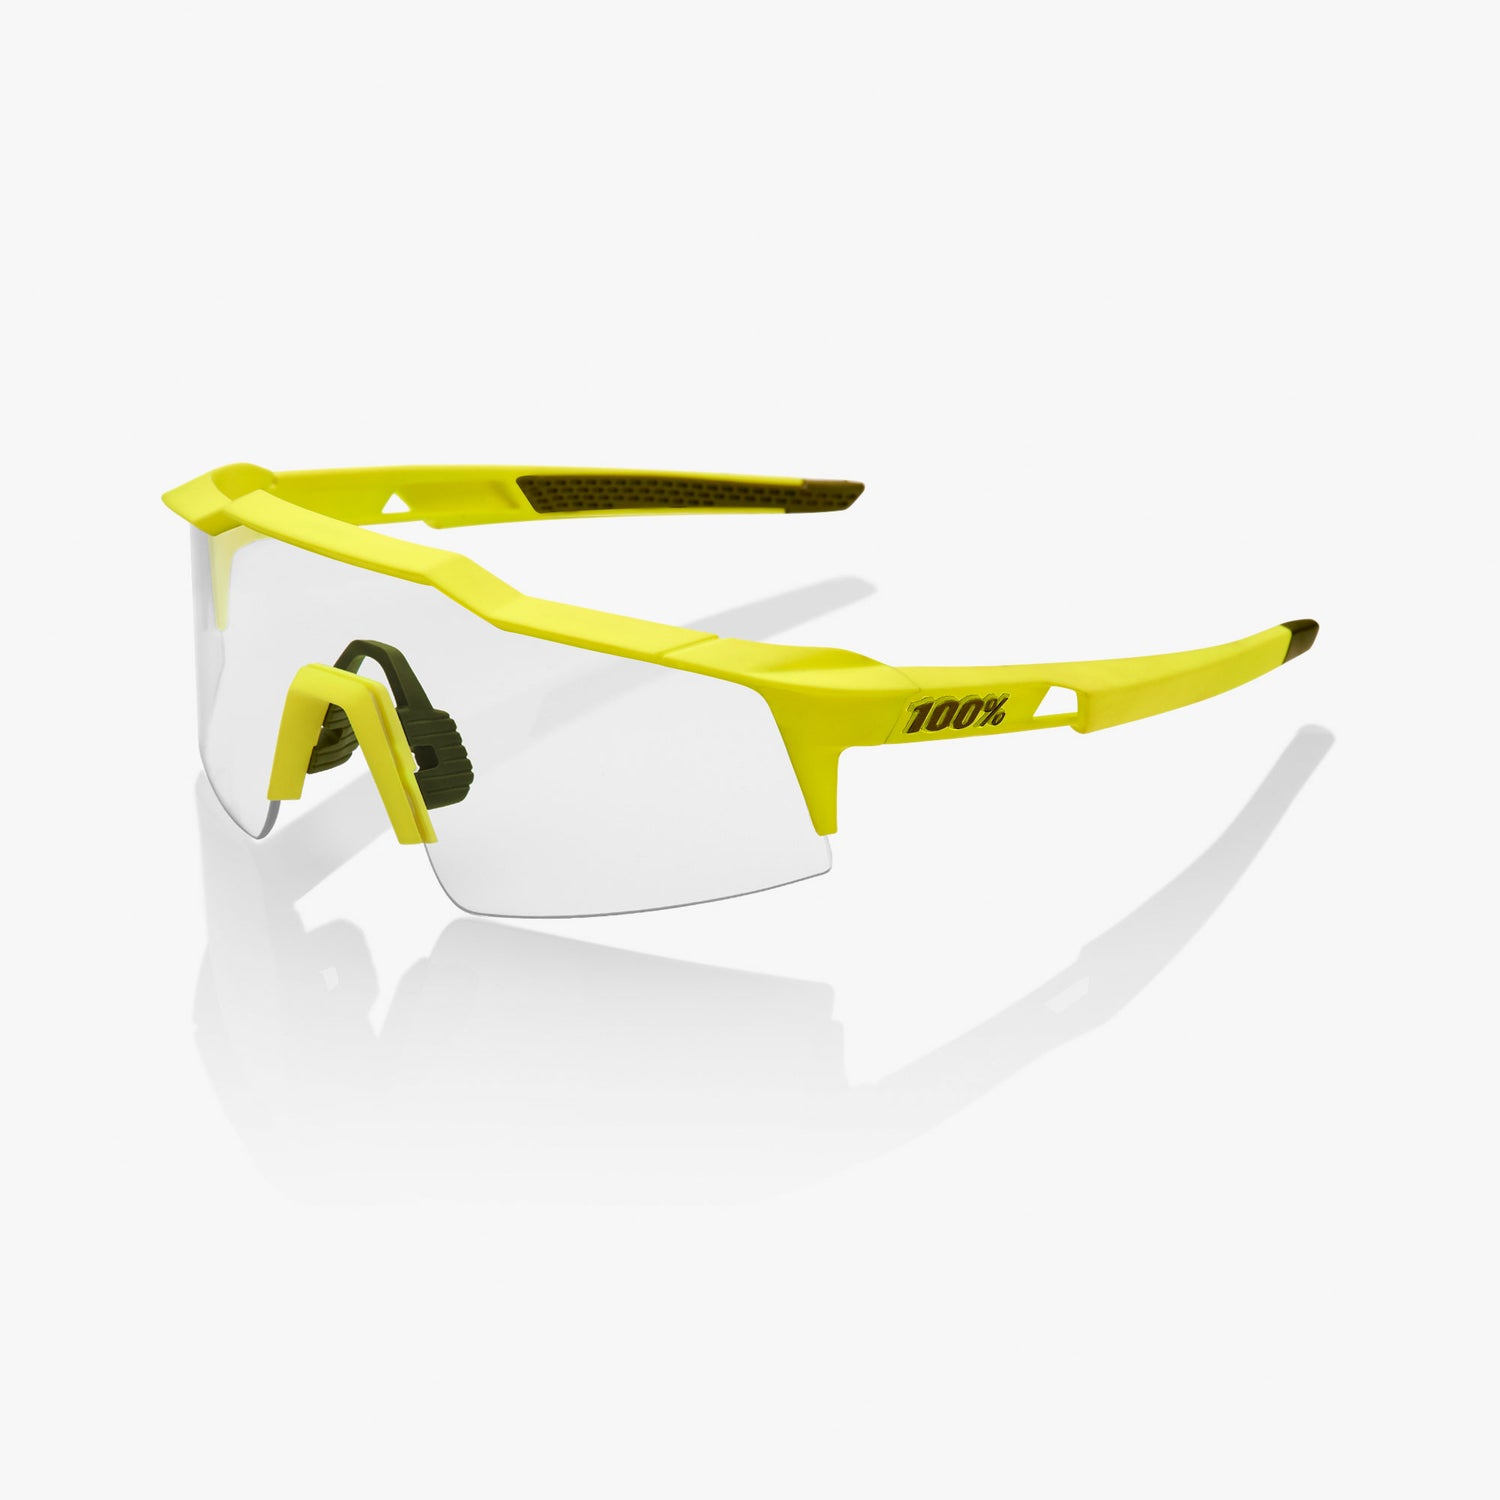 SPEEDCRAFT SL - Soft Tact Banana - Black Mirror Lens Lens